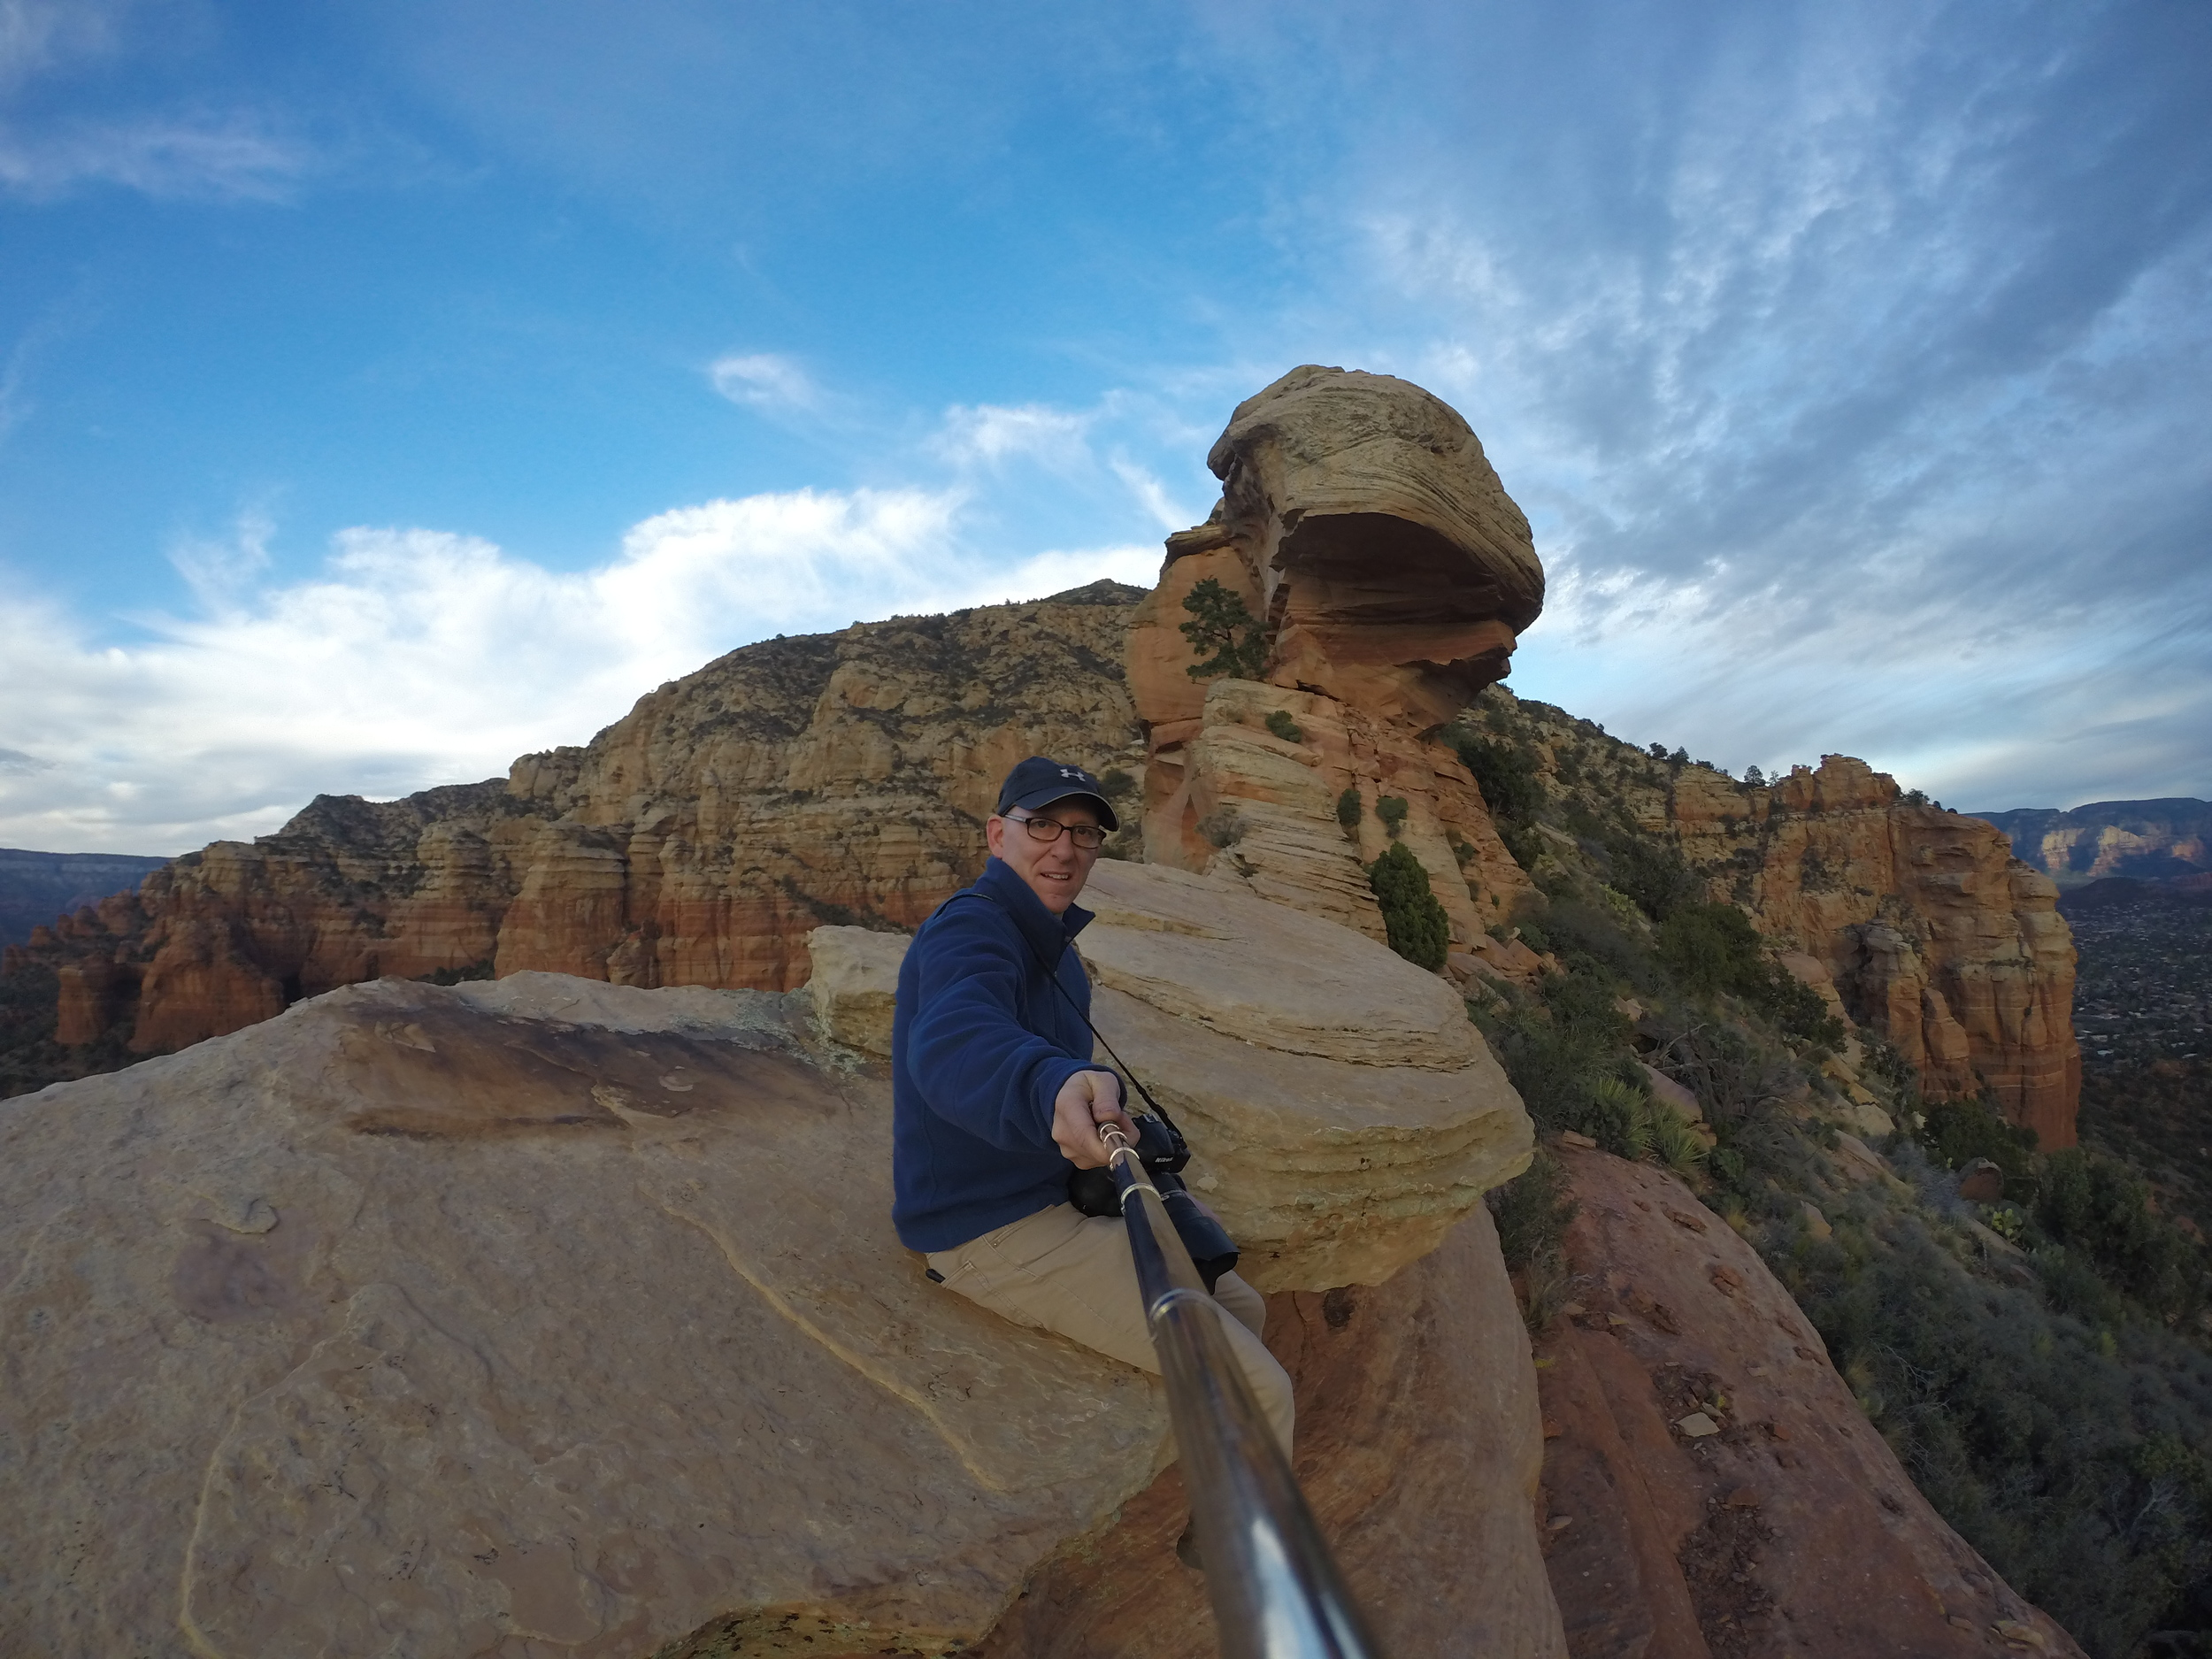 XSHOT 2.0 Review For GoPro